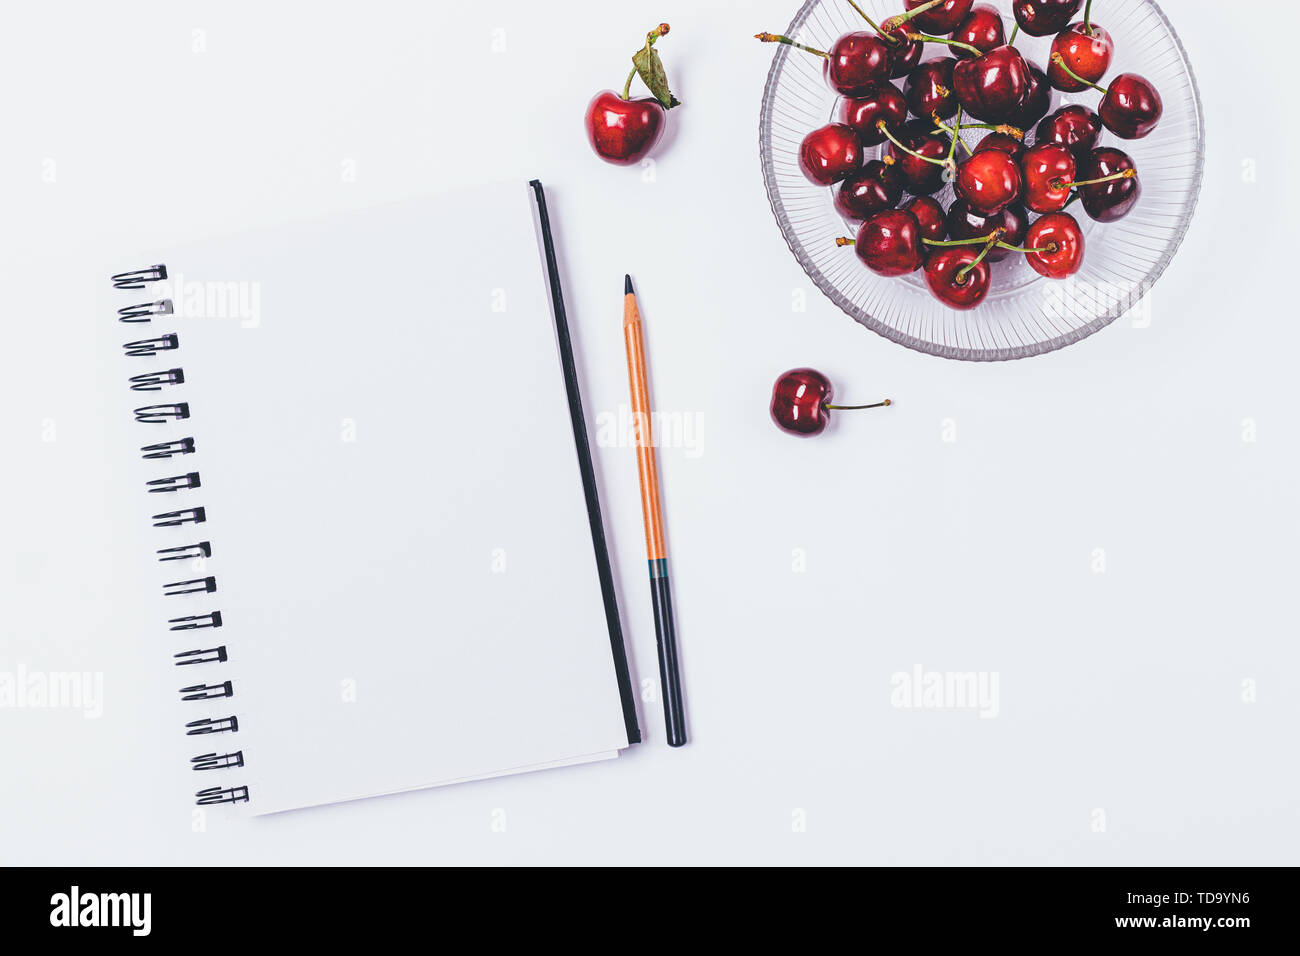 View from above of table with blank notepad and pencil next to healthy snack of fresh cherries, flat lay on white background. - Stock Image